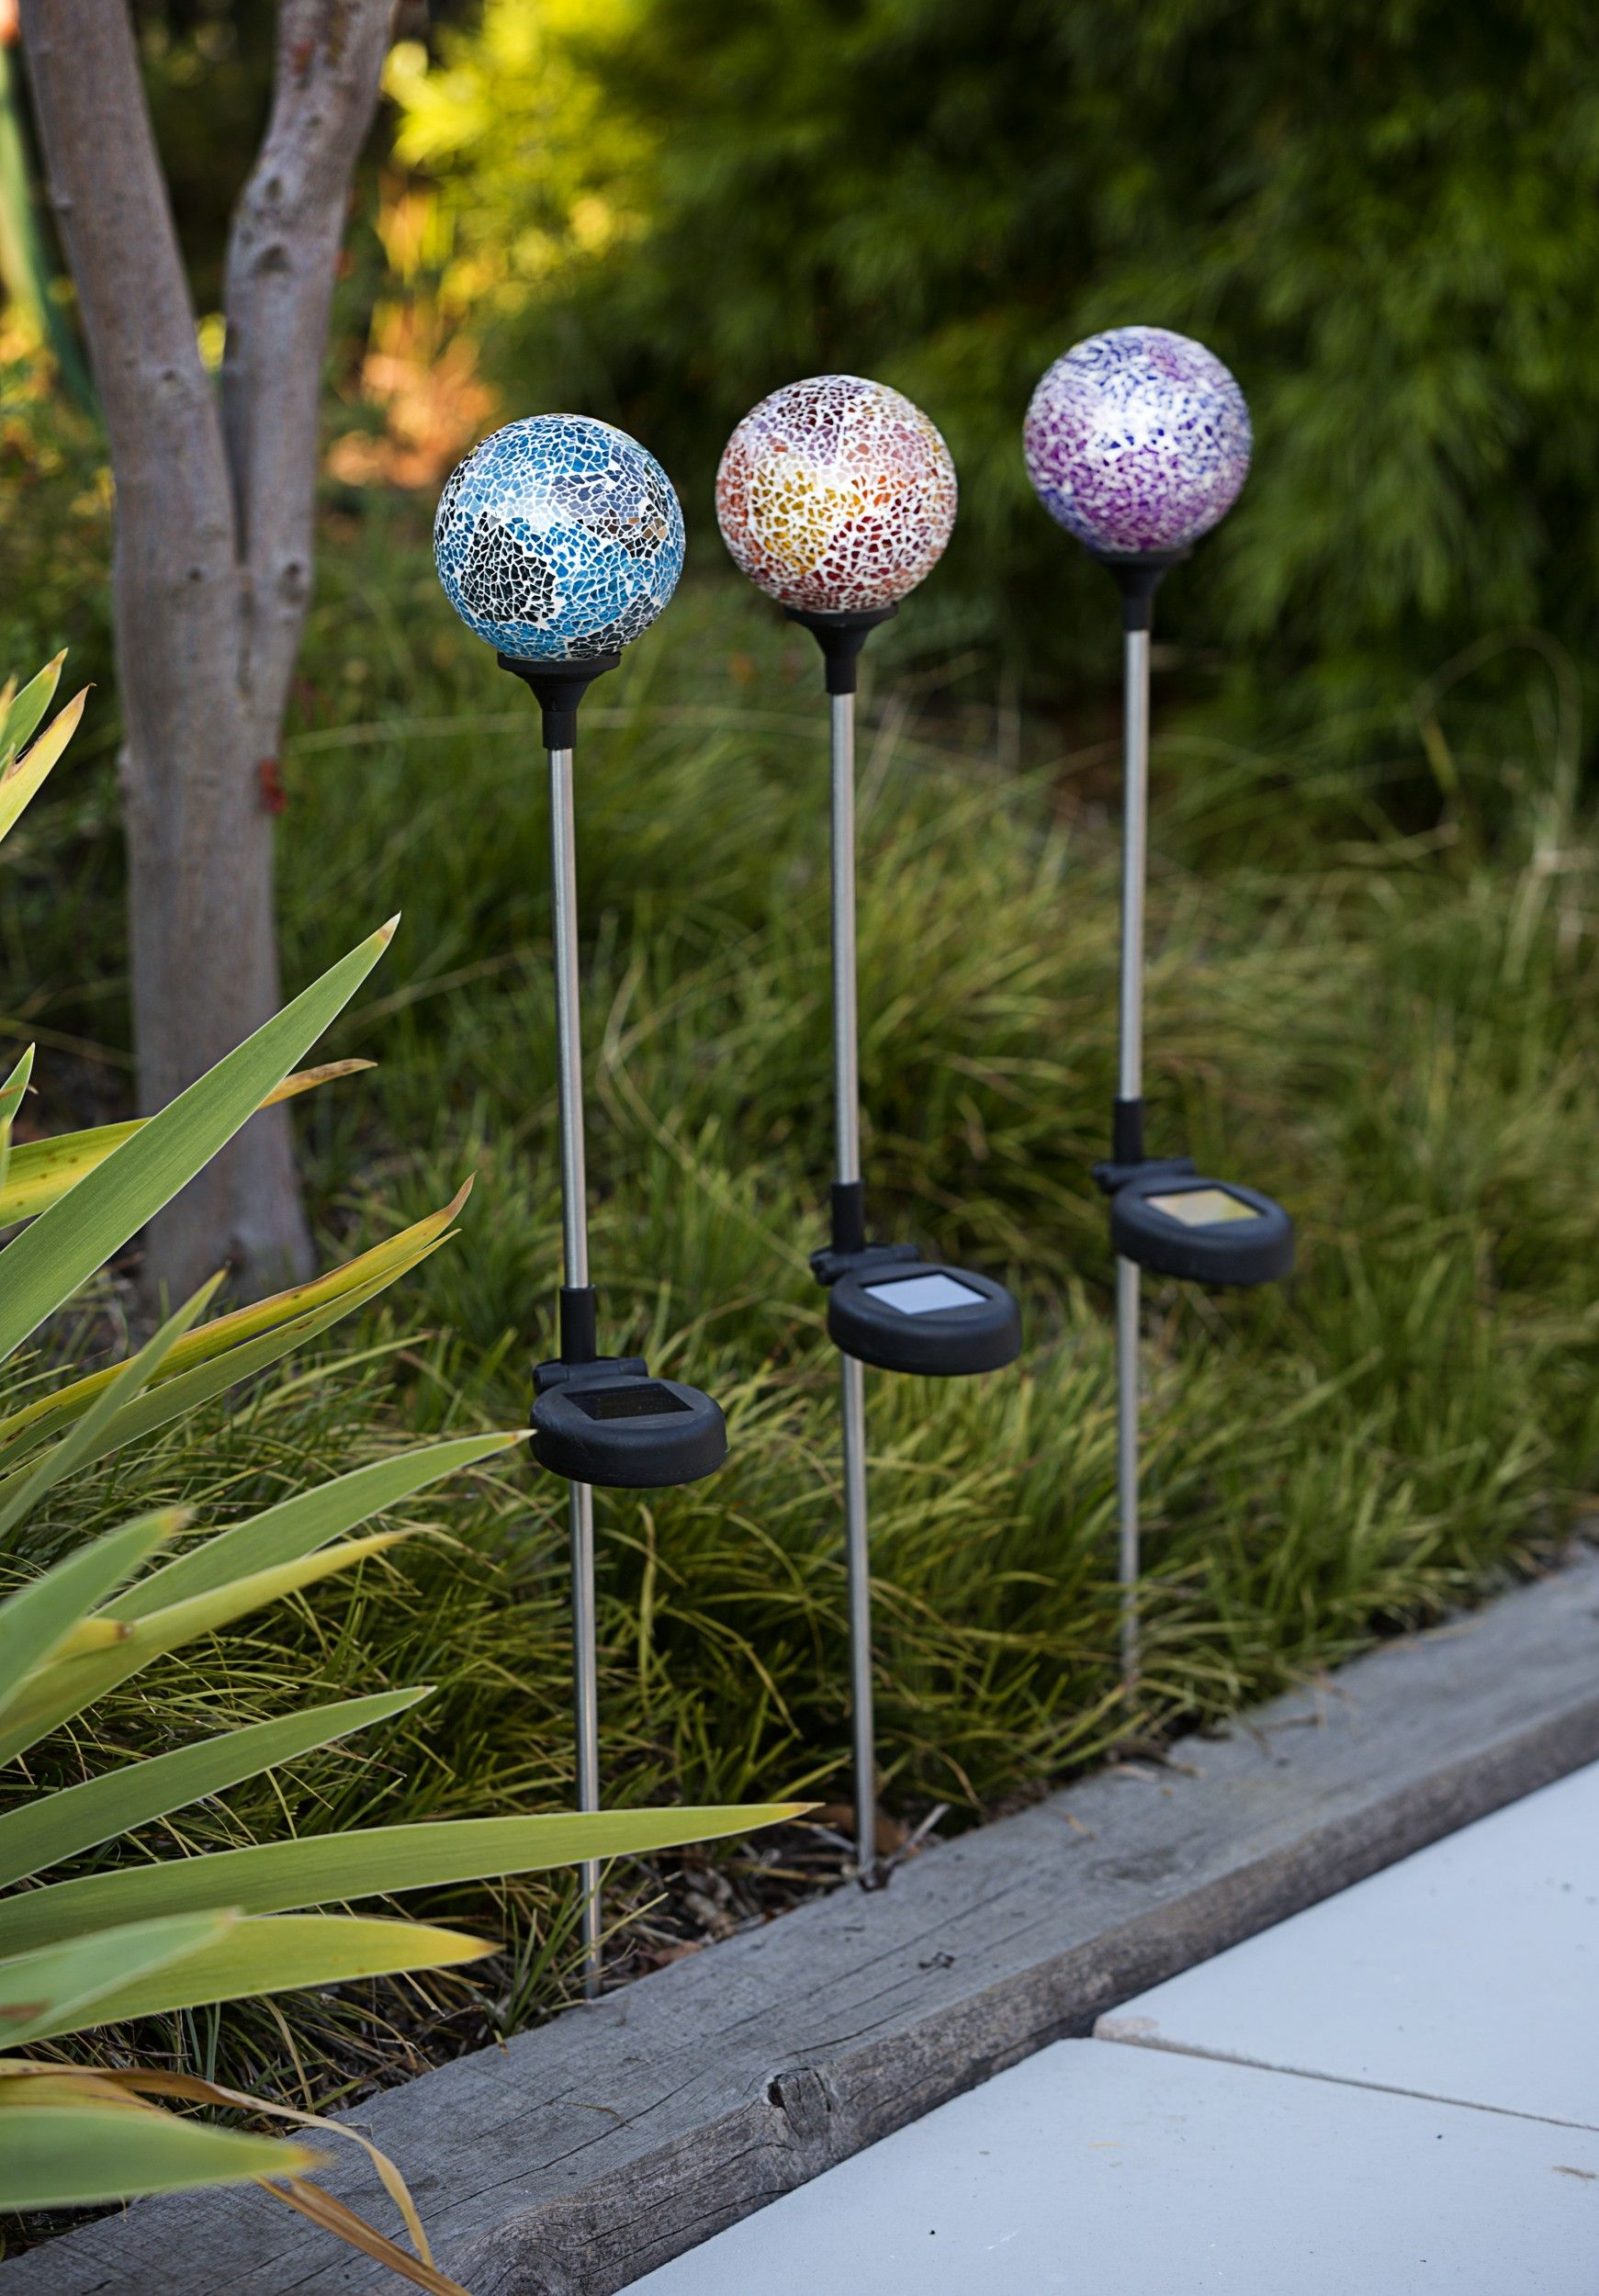 Crackle ball stake solar lights only $10 each from The Reject Shop